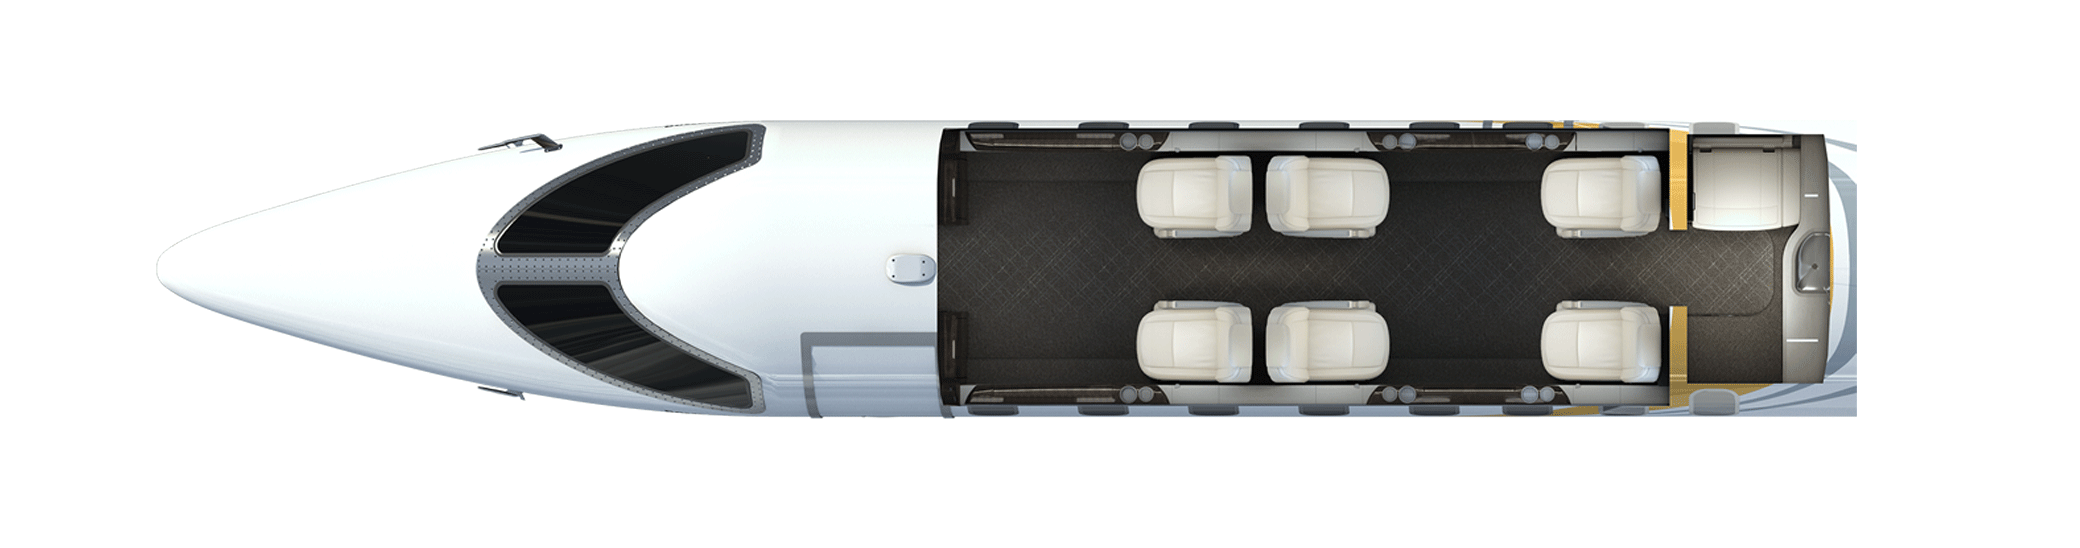 Learjet 75 Liberty Floor plan